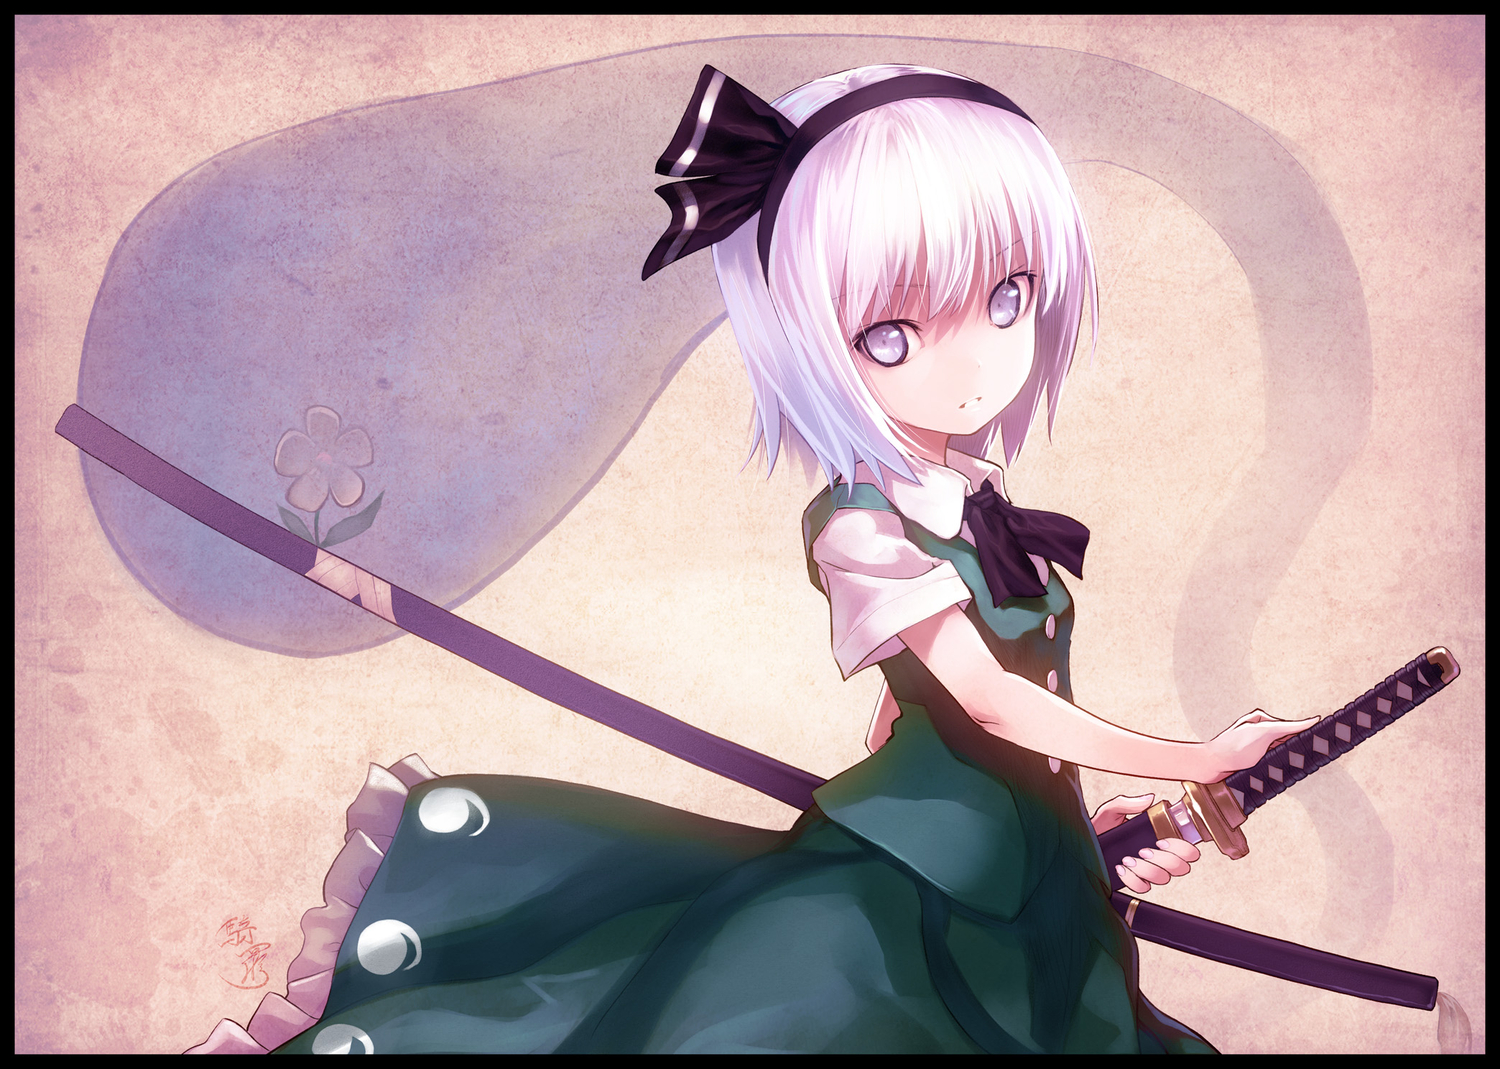 bow dress flowers katana kiran konpaku_youmu sword touhou weapon